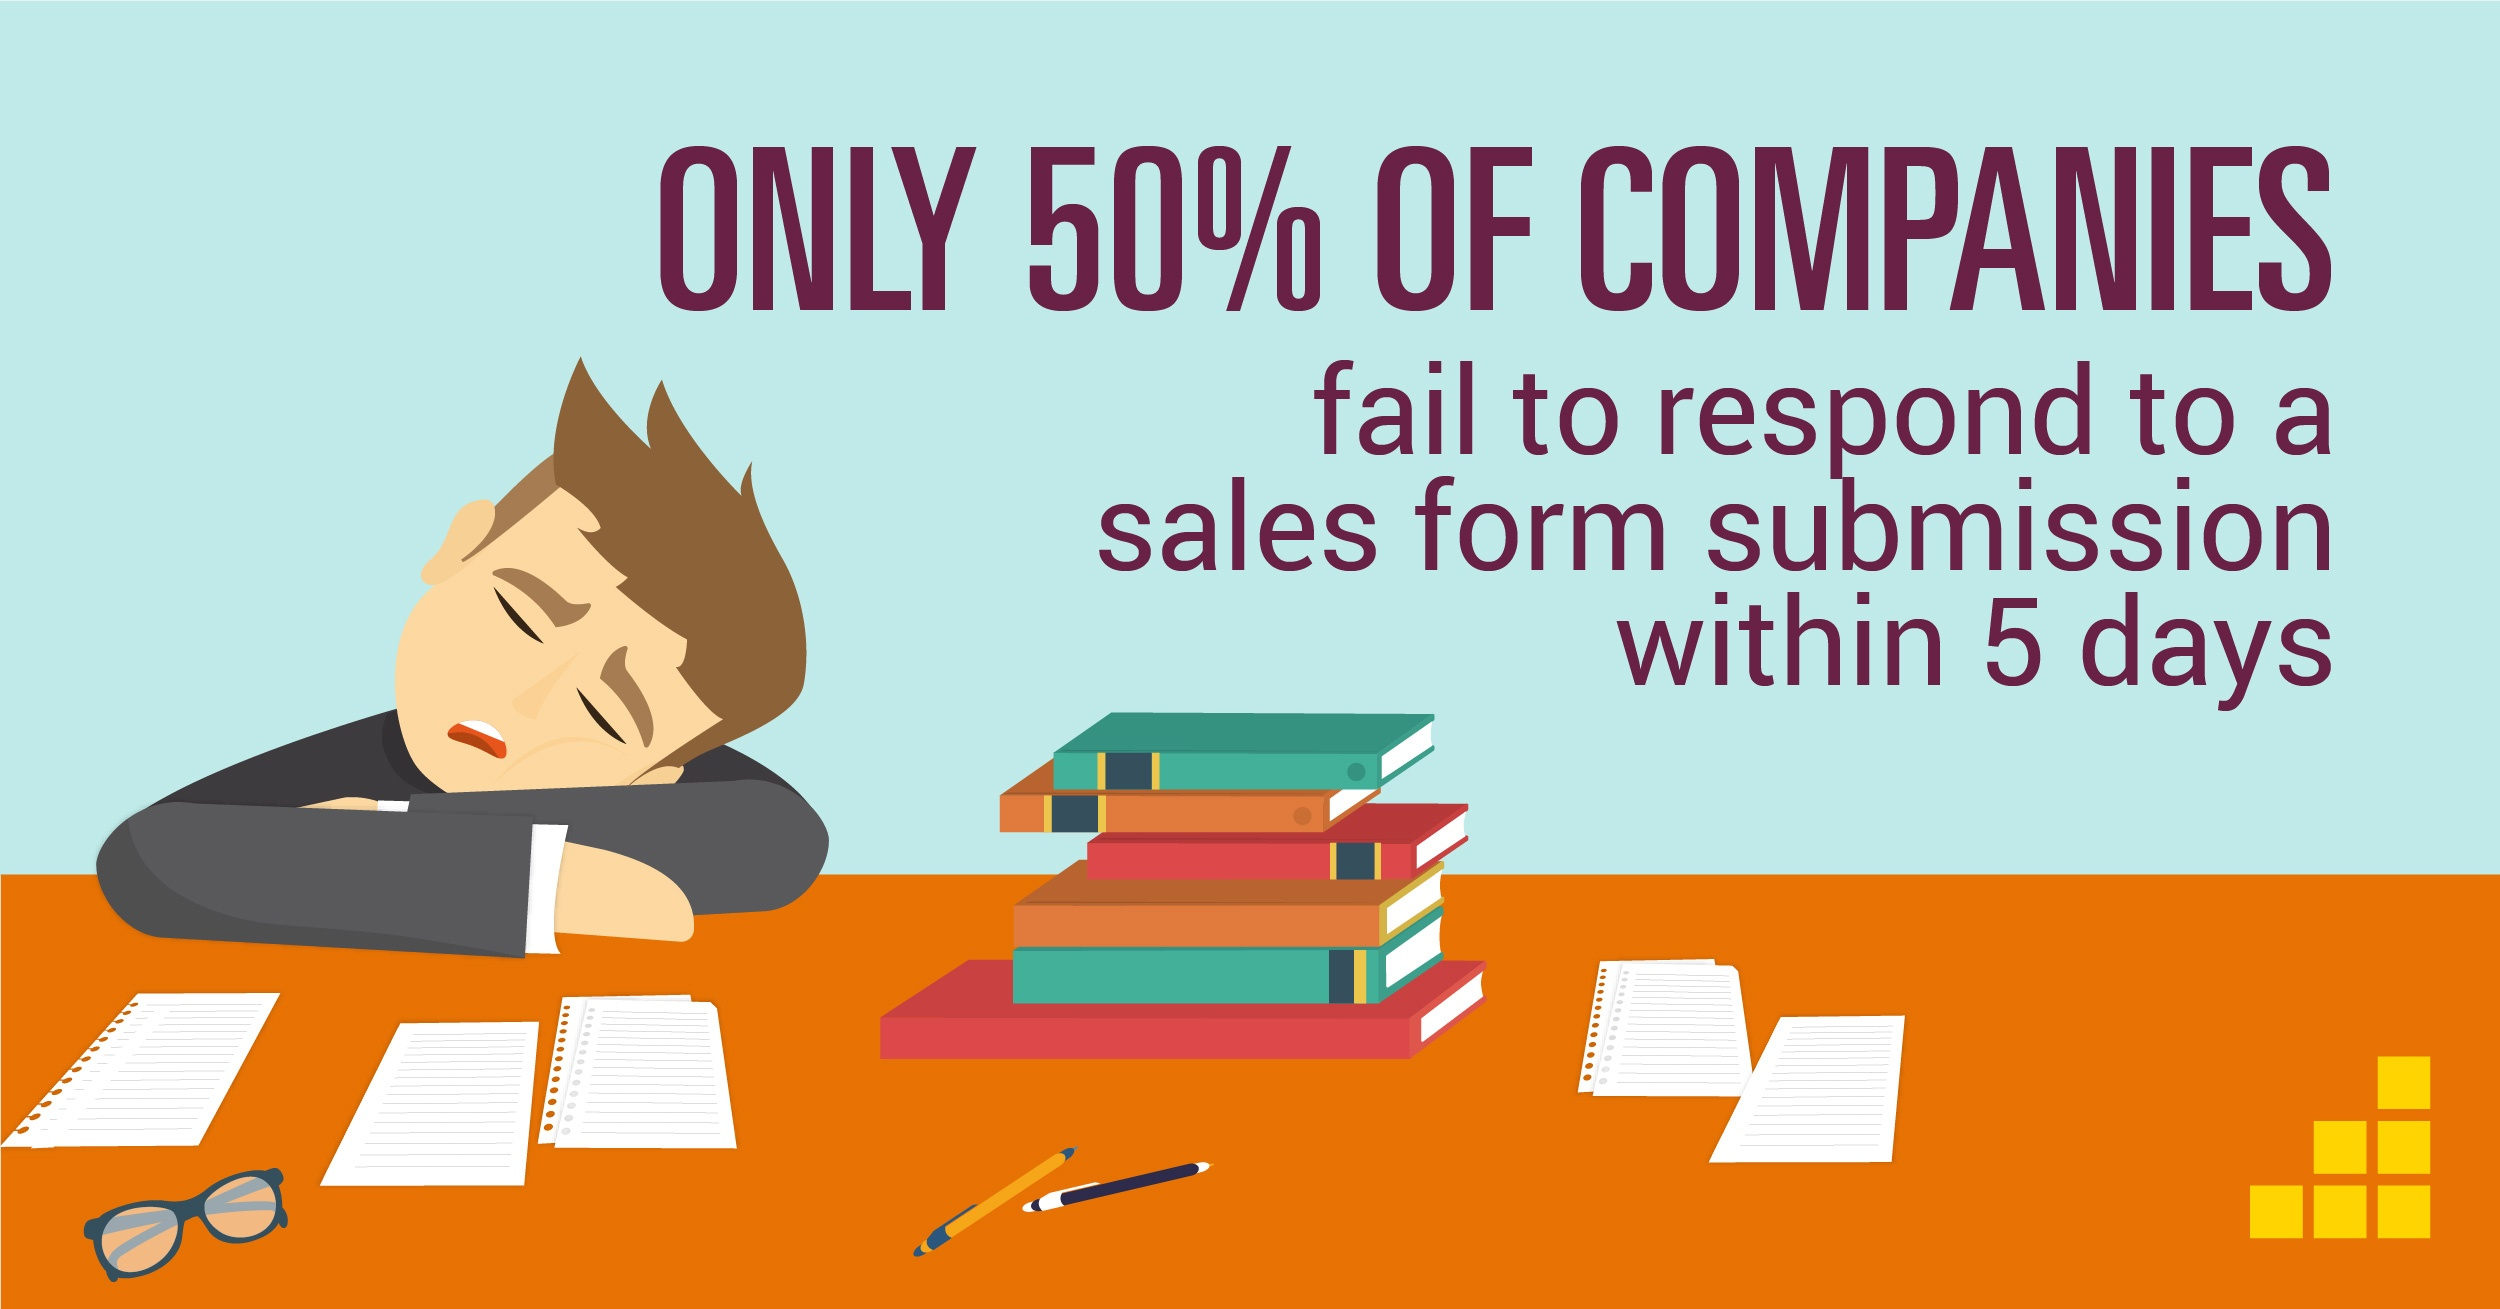 Only 50% of companies fail to respond to a sales form submission within 5 days - sales productivity stat